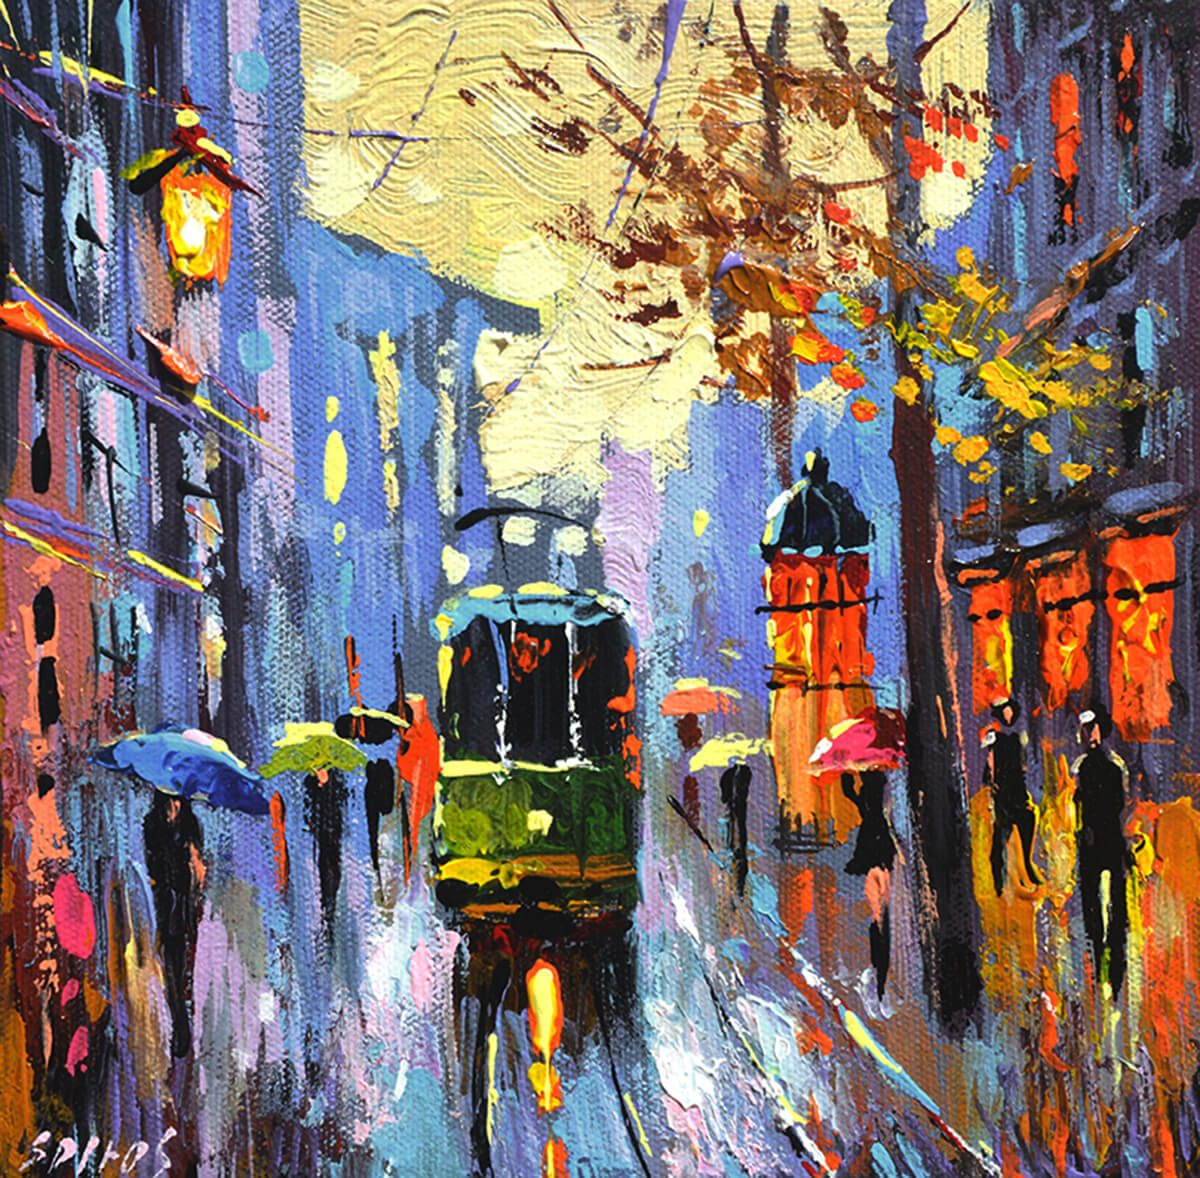 A Lonely Tram | Original Art gift idea | Bridal Registry for Art